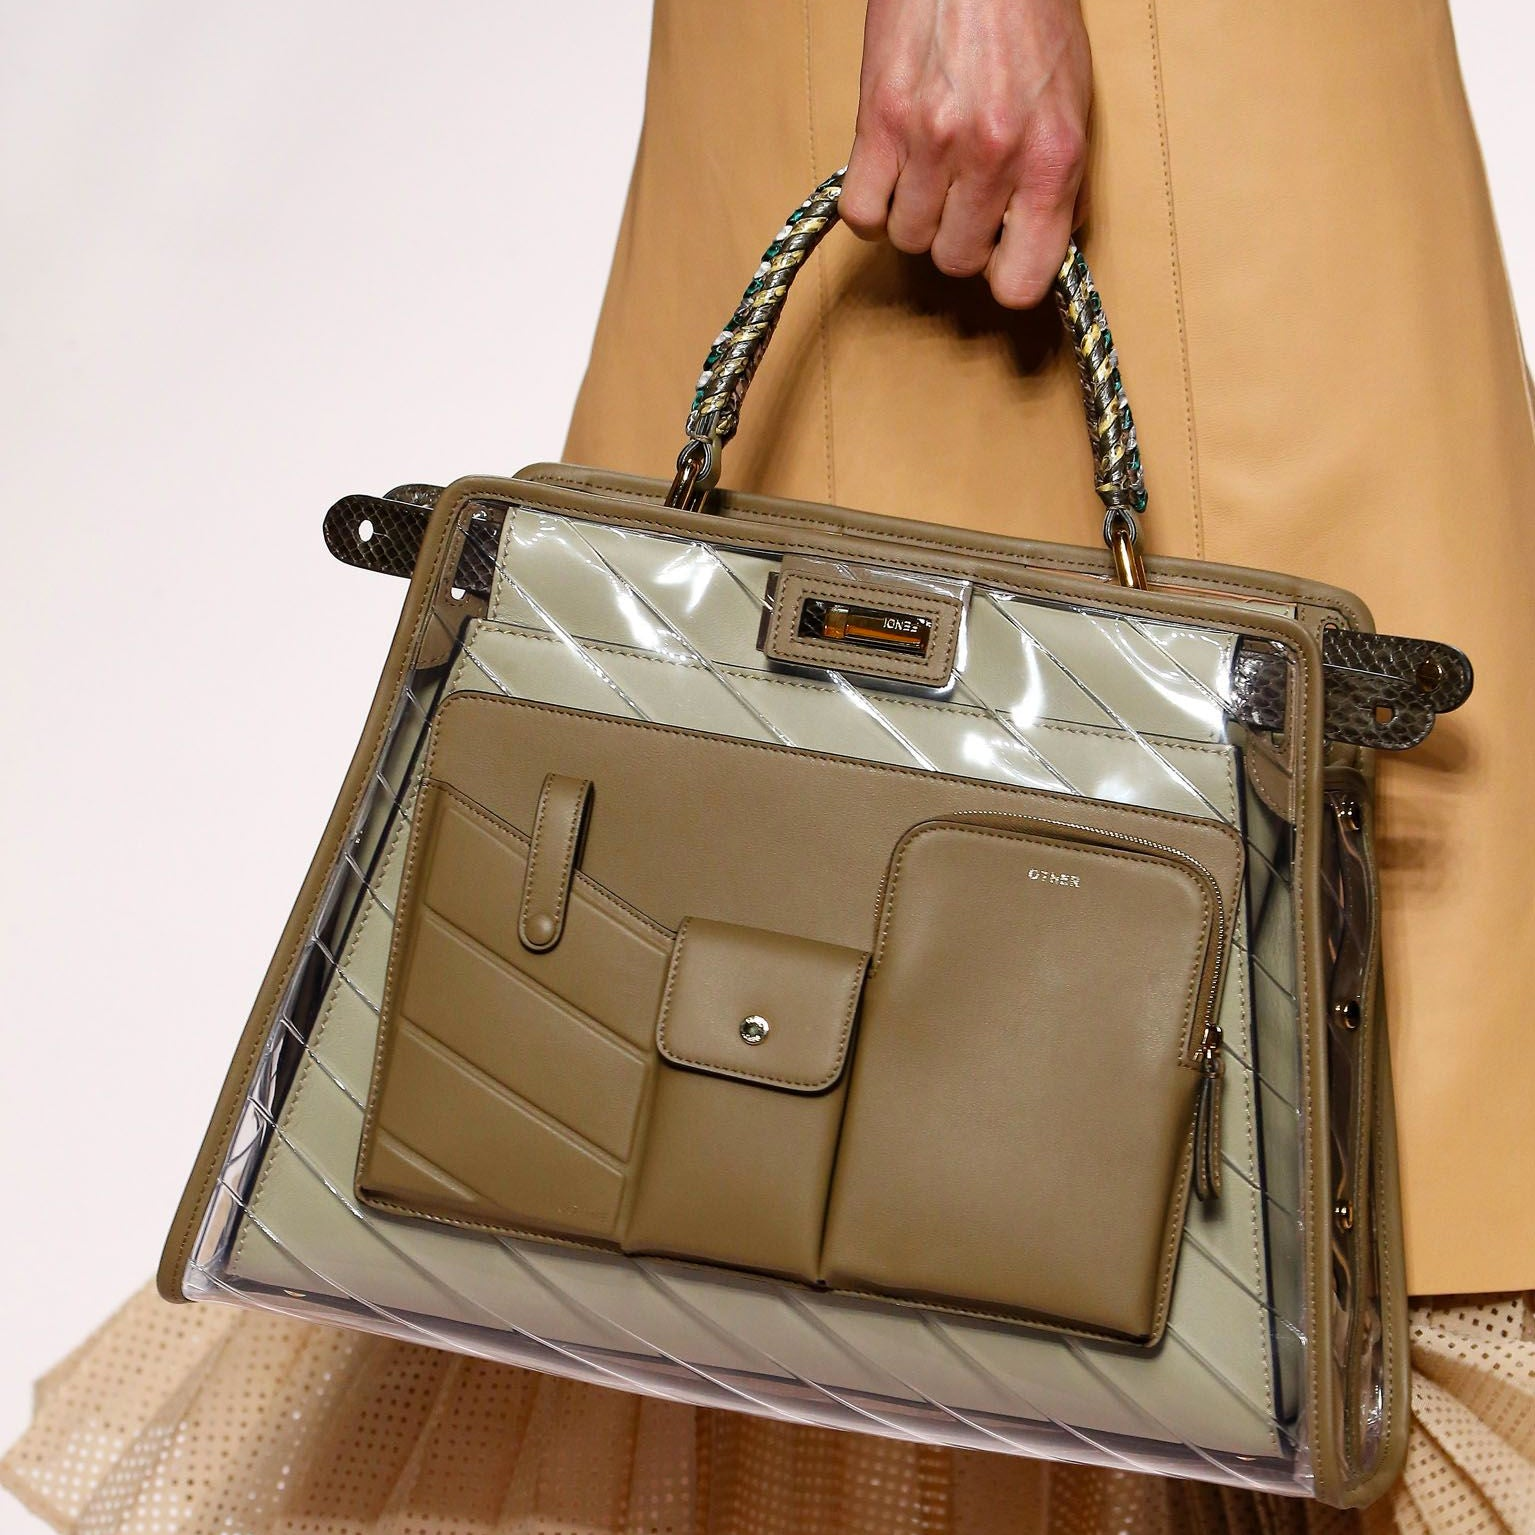 The Peekaboo Fendi Handbag is a Spring/Summer Must-Have